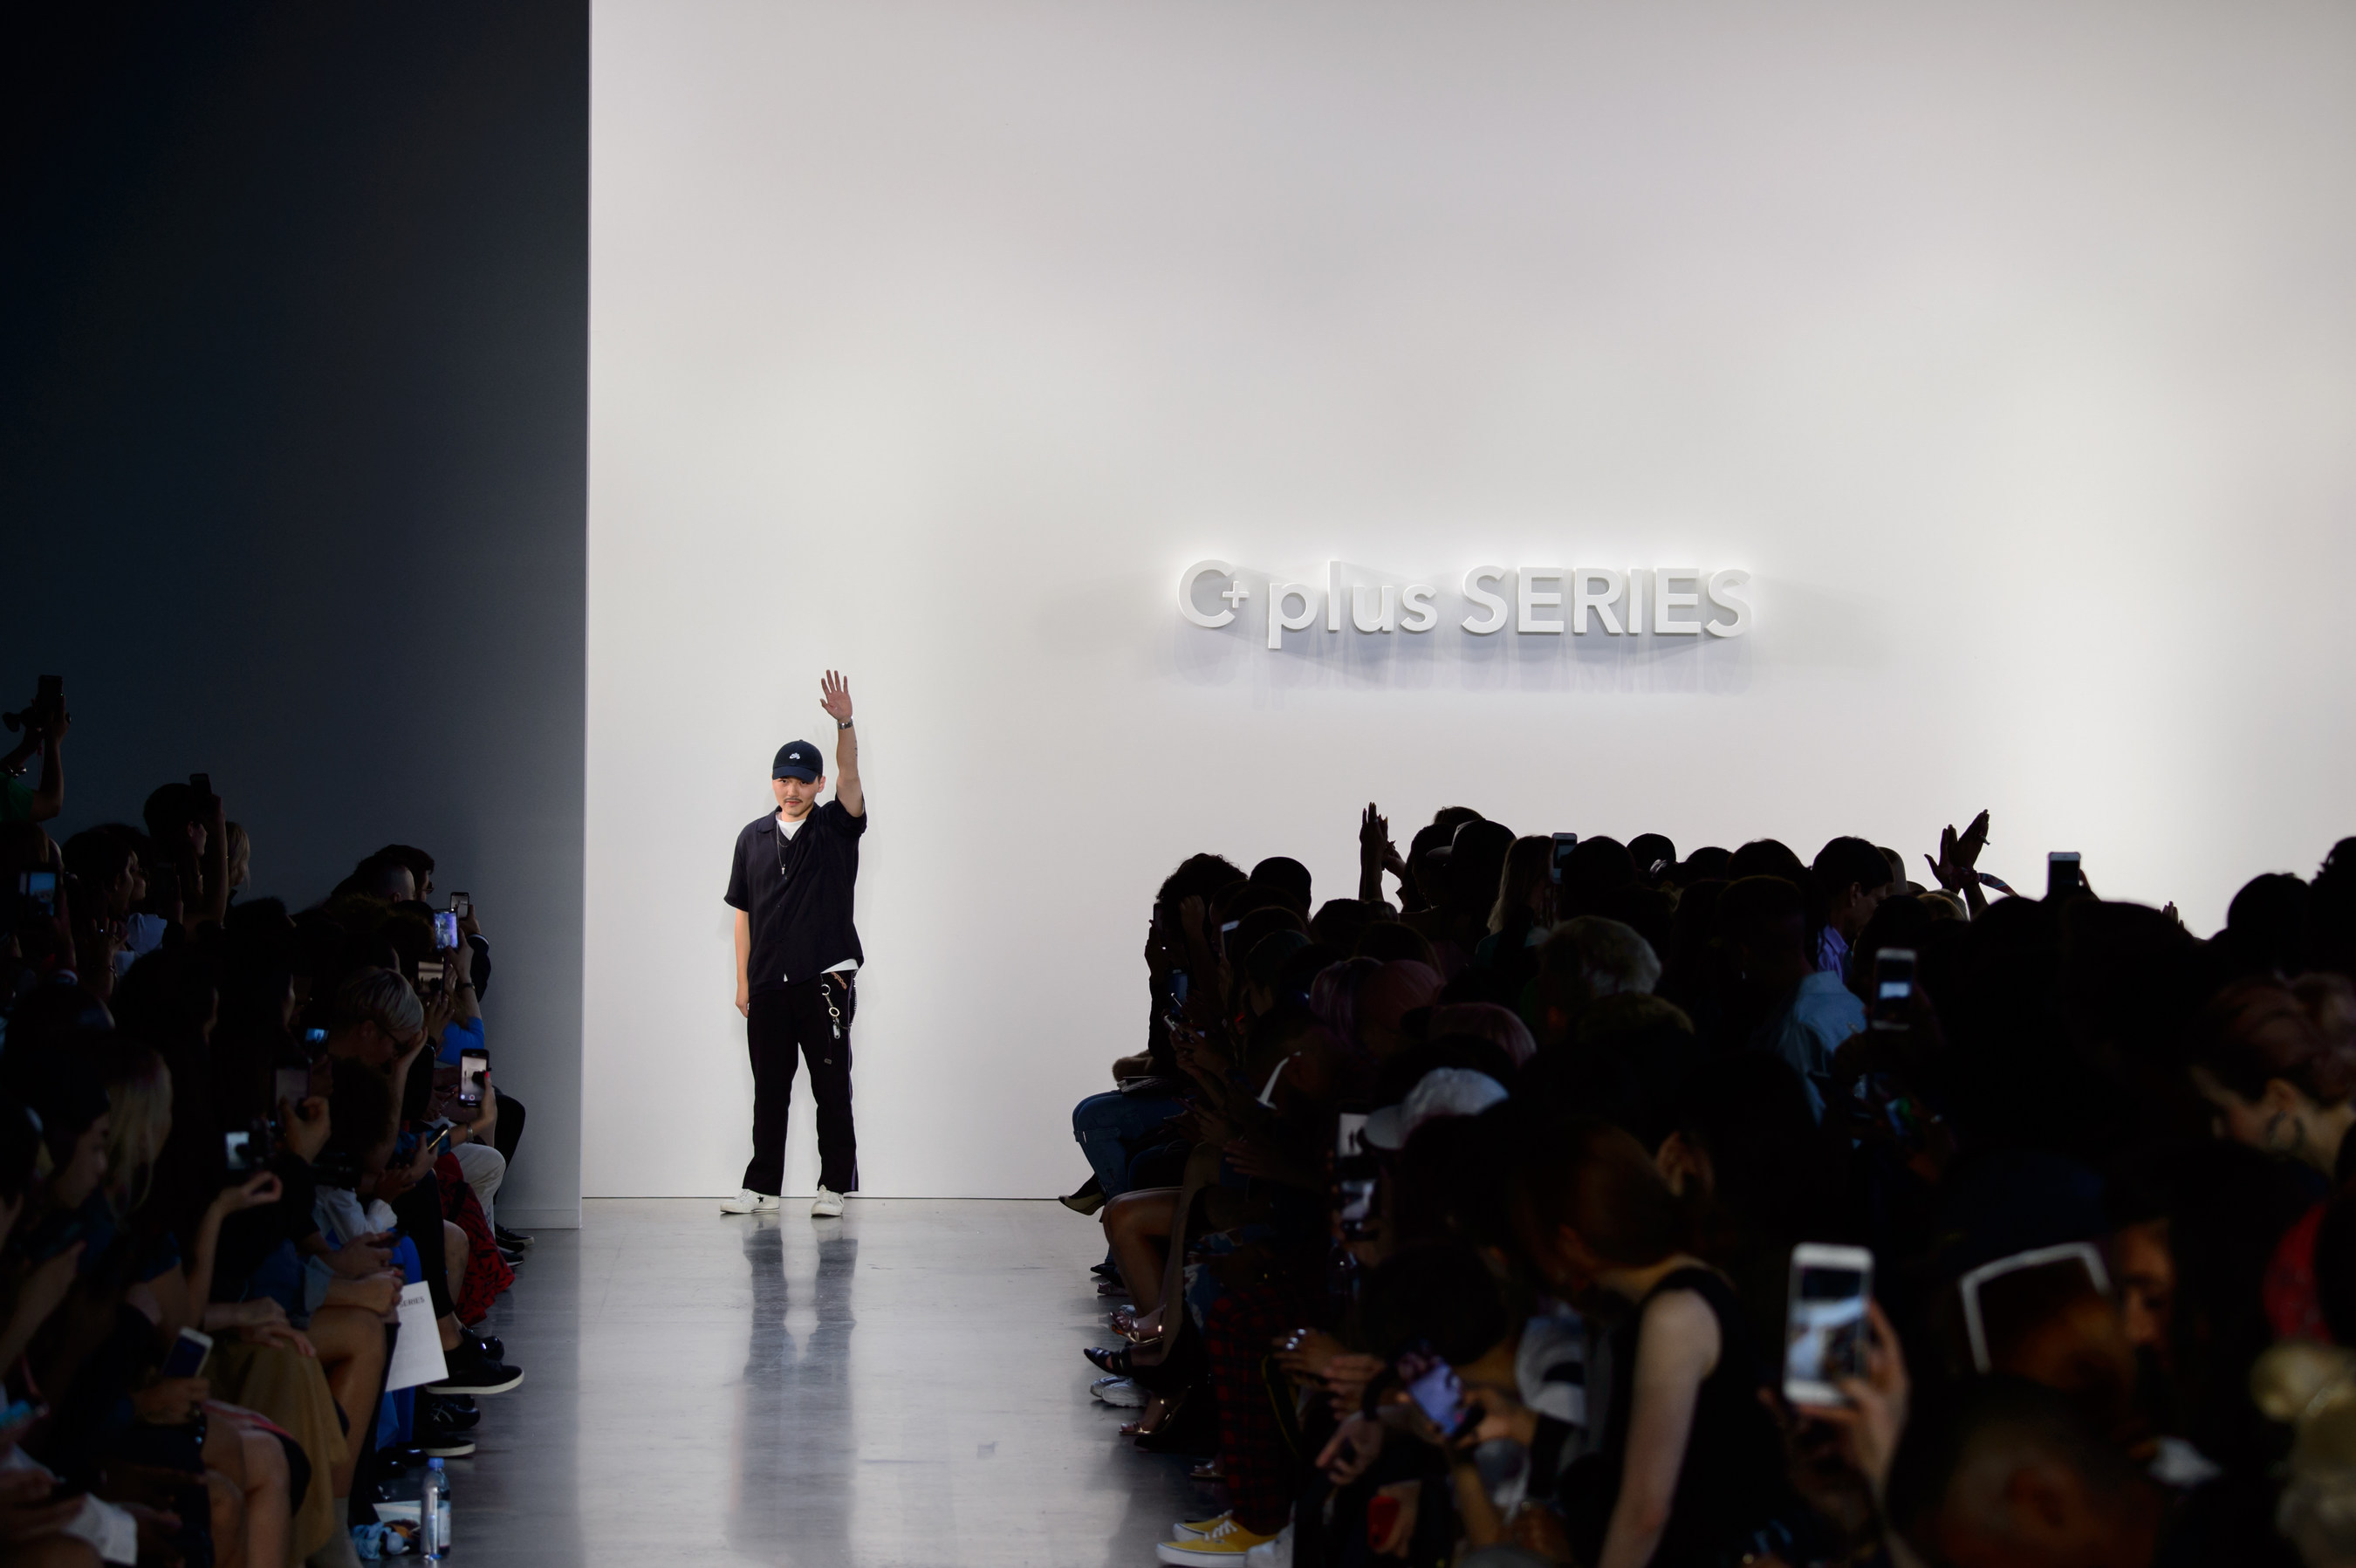 C+plus SERIES, a brand born from the era of modern elegance, debuted its first collection in New York Fashion Week SS19, the designer C.T. Liu got a big round of applause from audiences after finale.